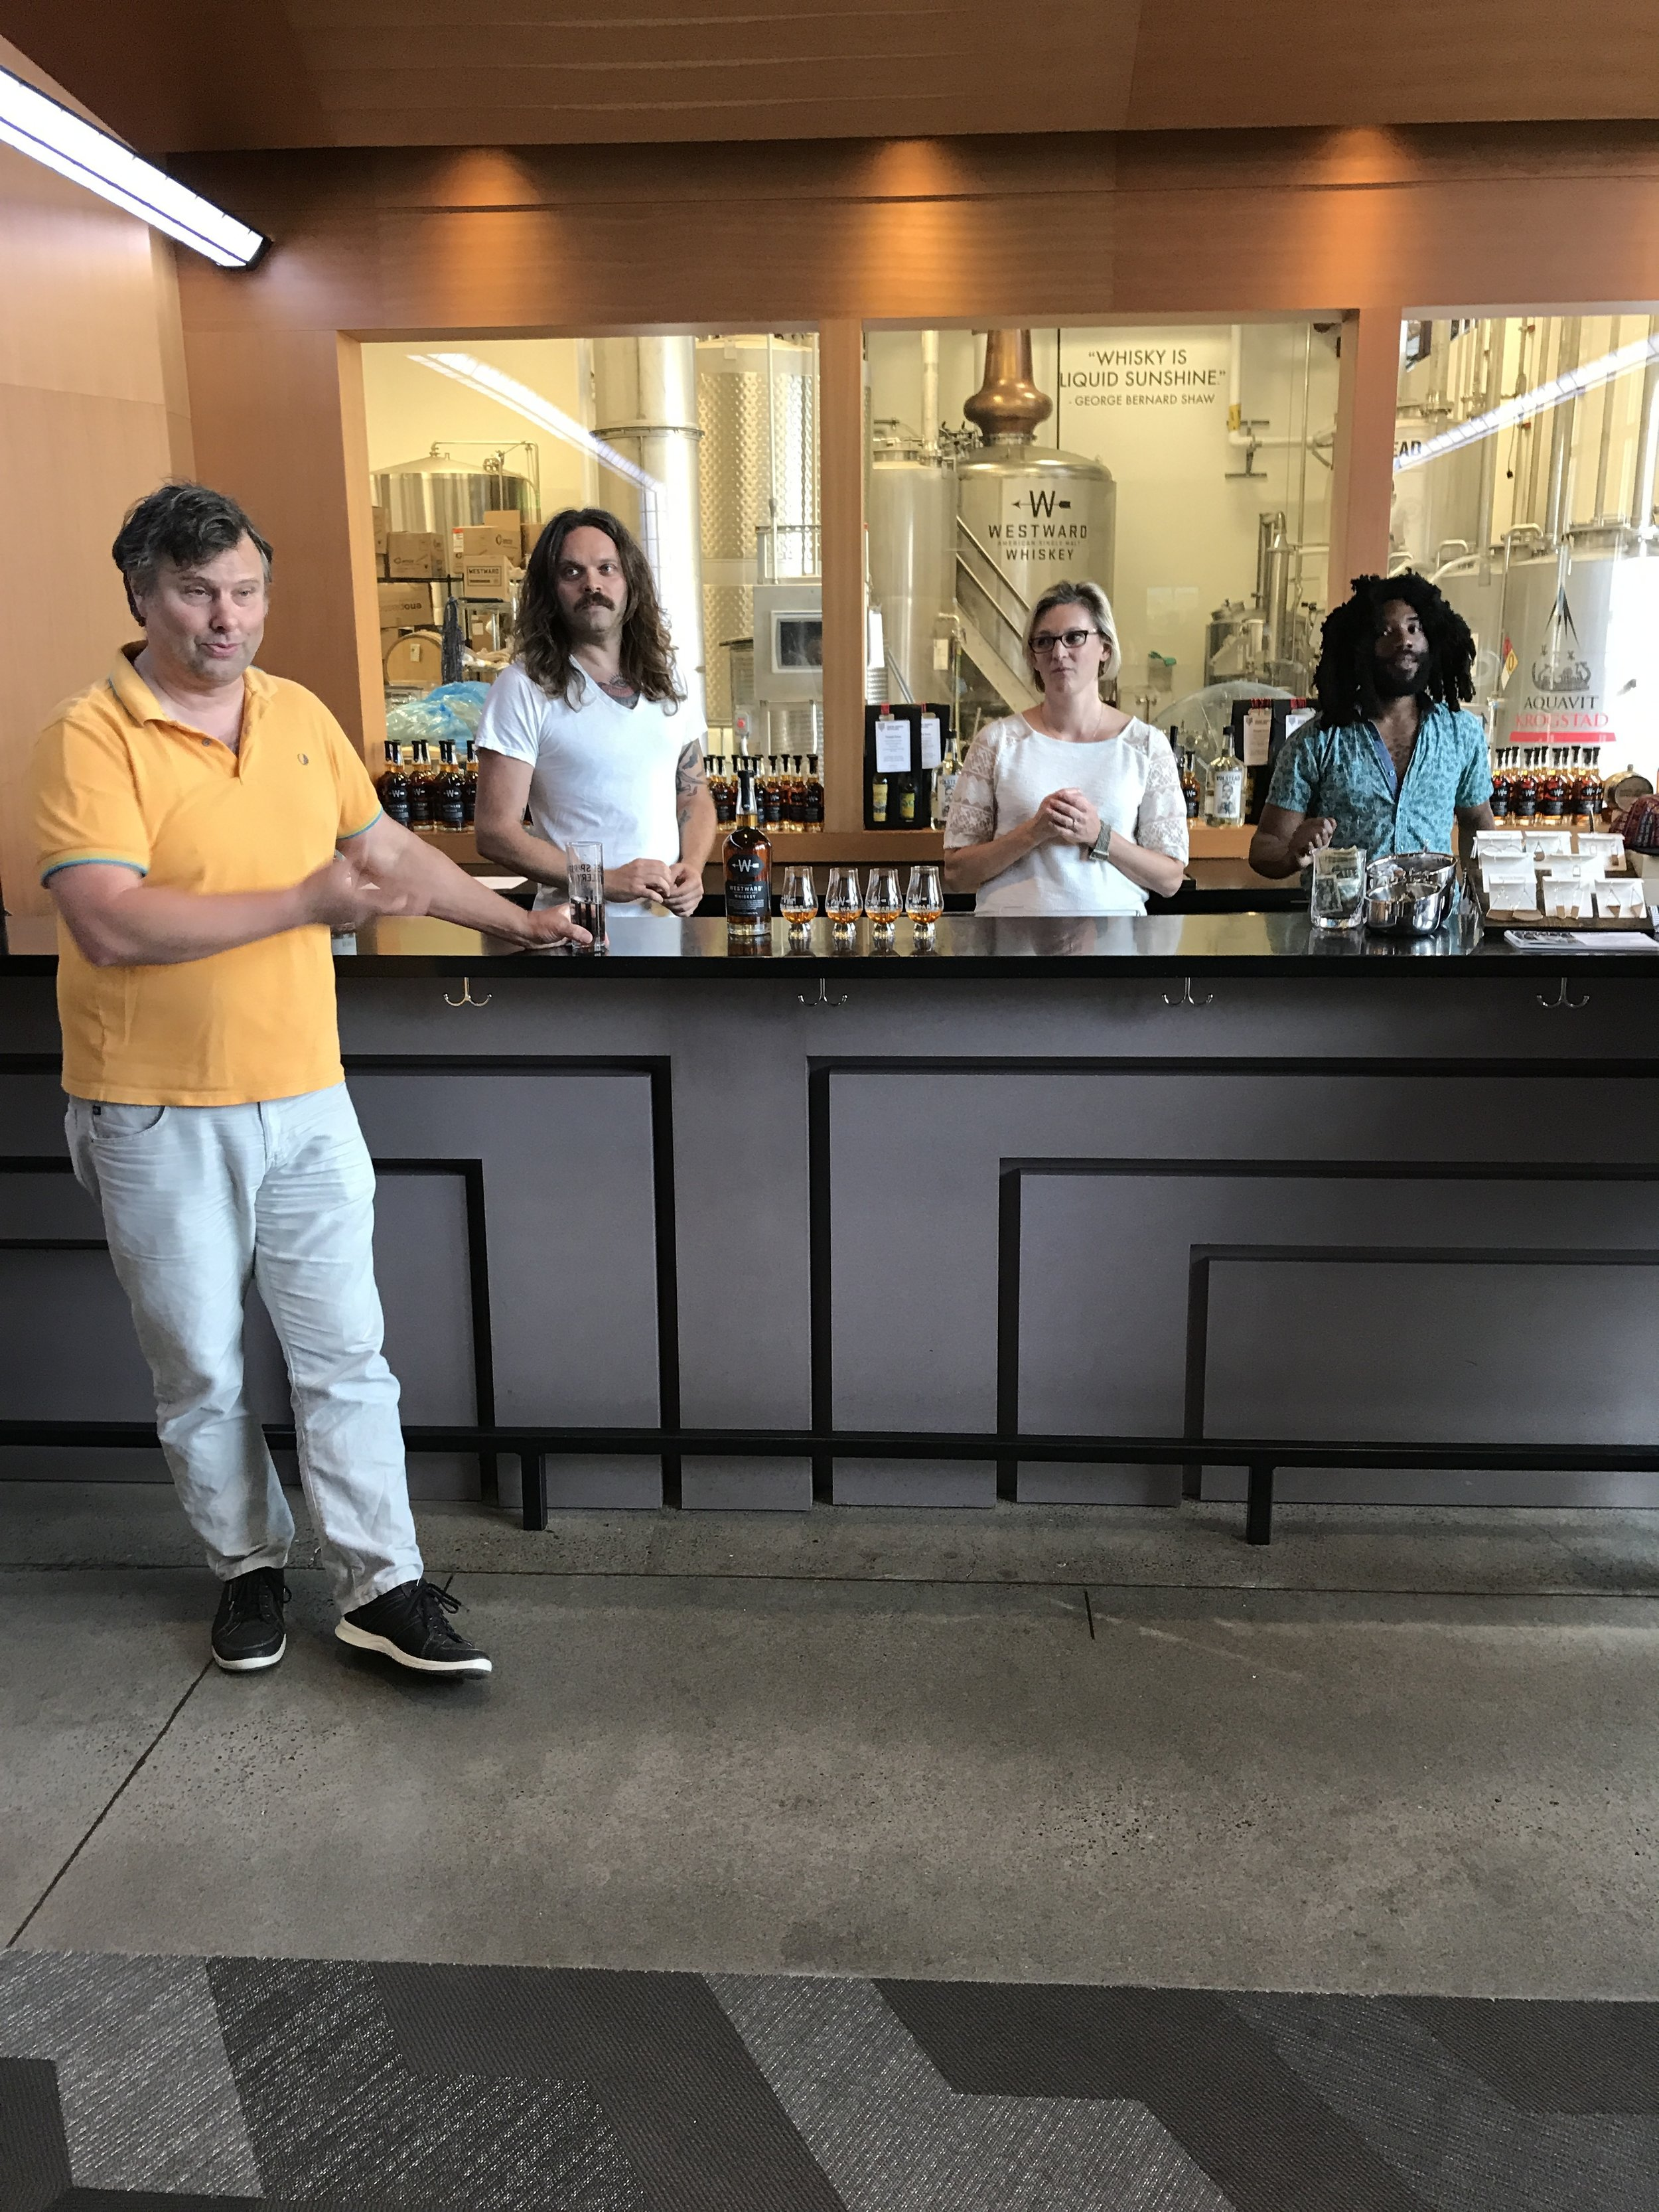 Christian Krogstad, Miles Monroe, and House Spirits staff.